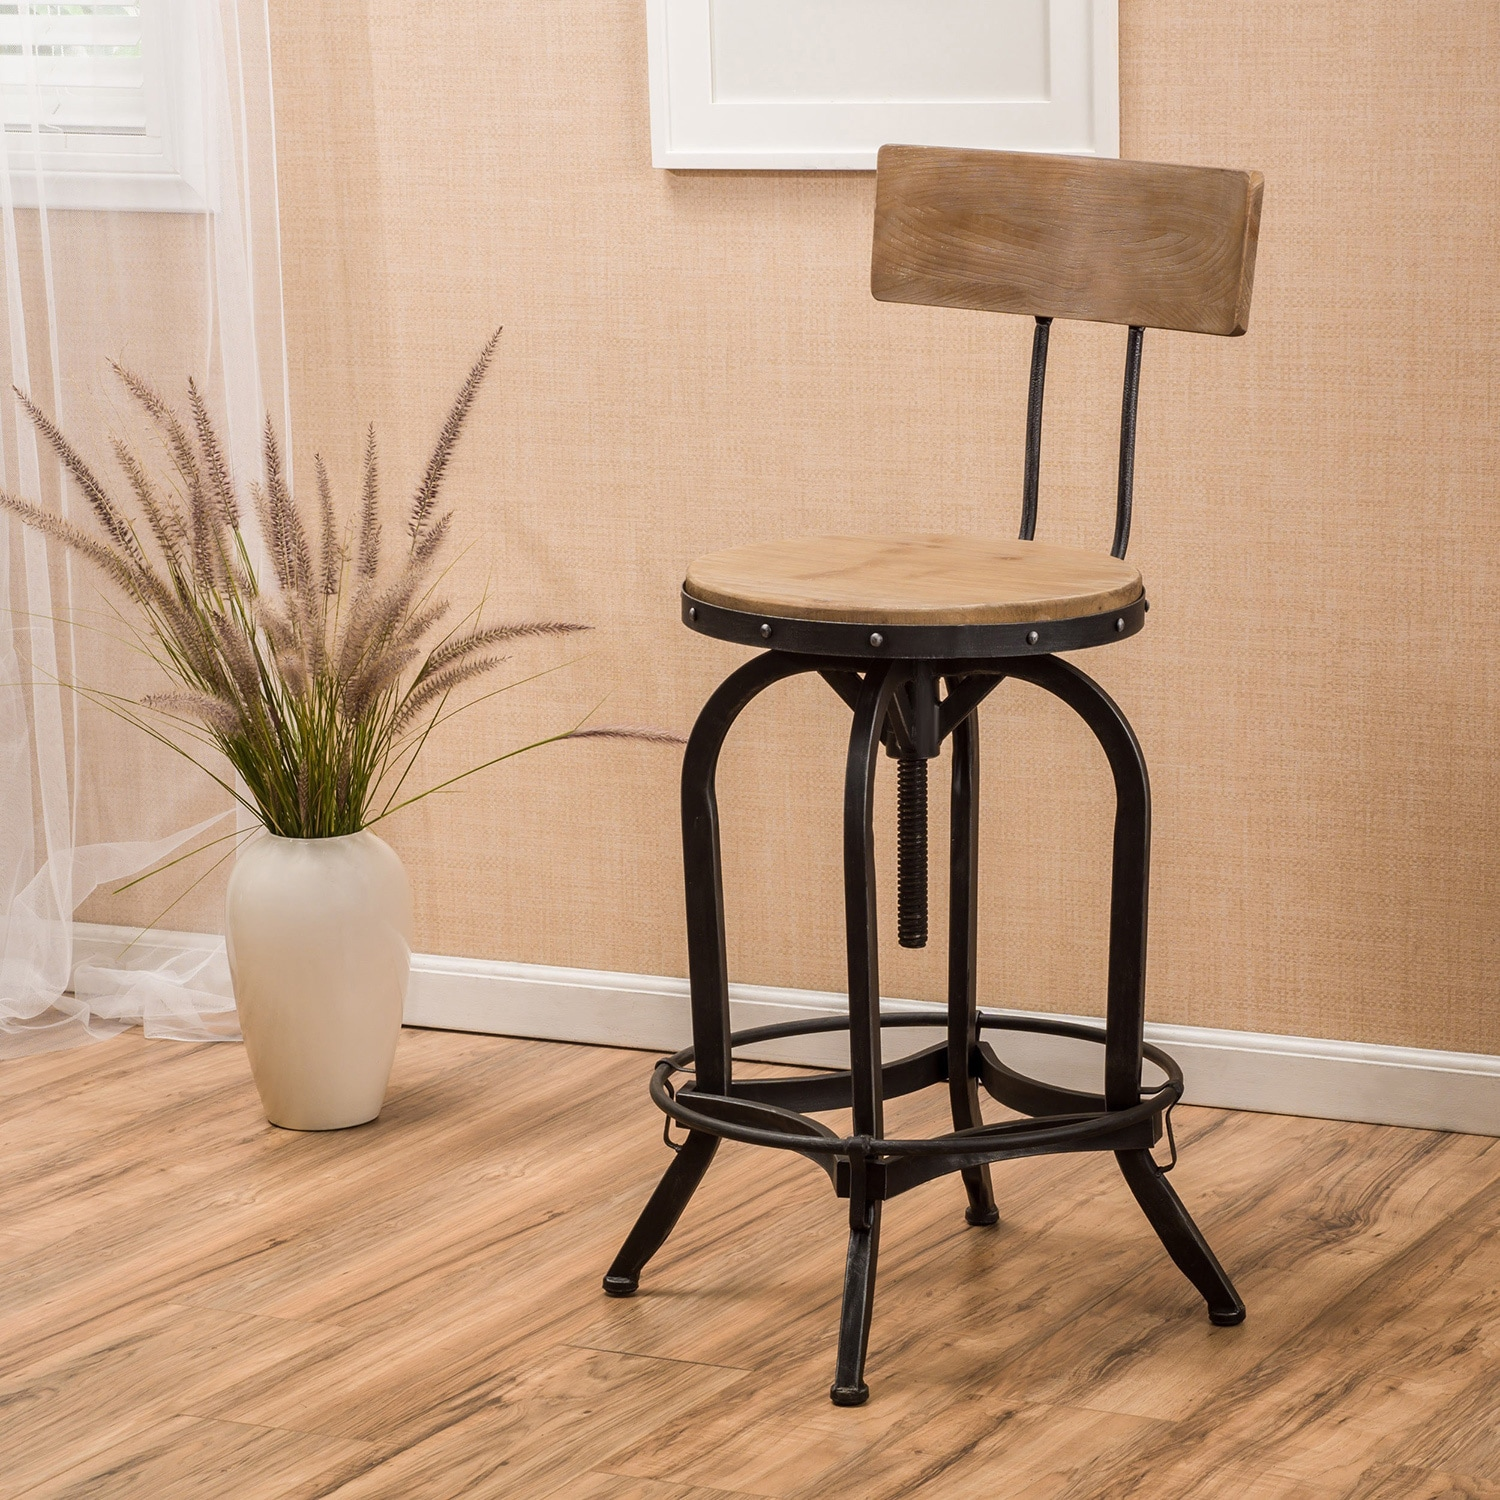 Shop Stirling Adjustable Wood Backed Bar Stool By Christopher Knight Home    On Sale   Free Shipping Today   Overstock.com   11490290